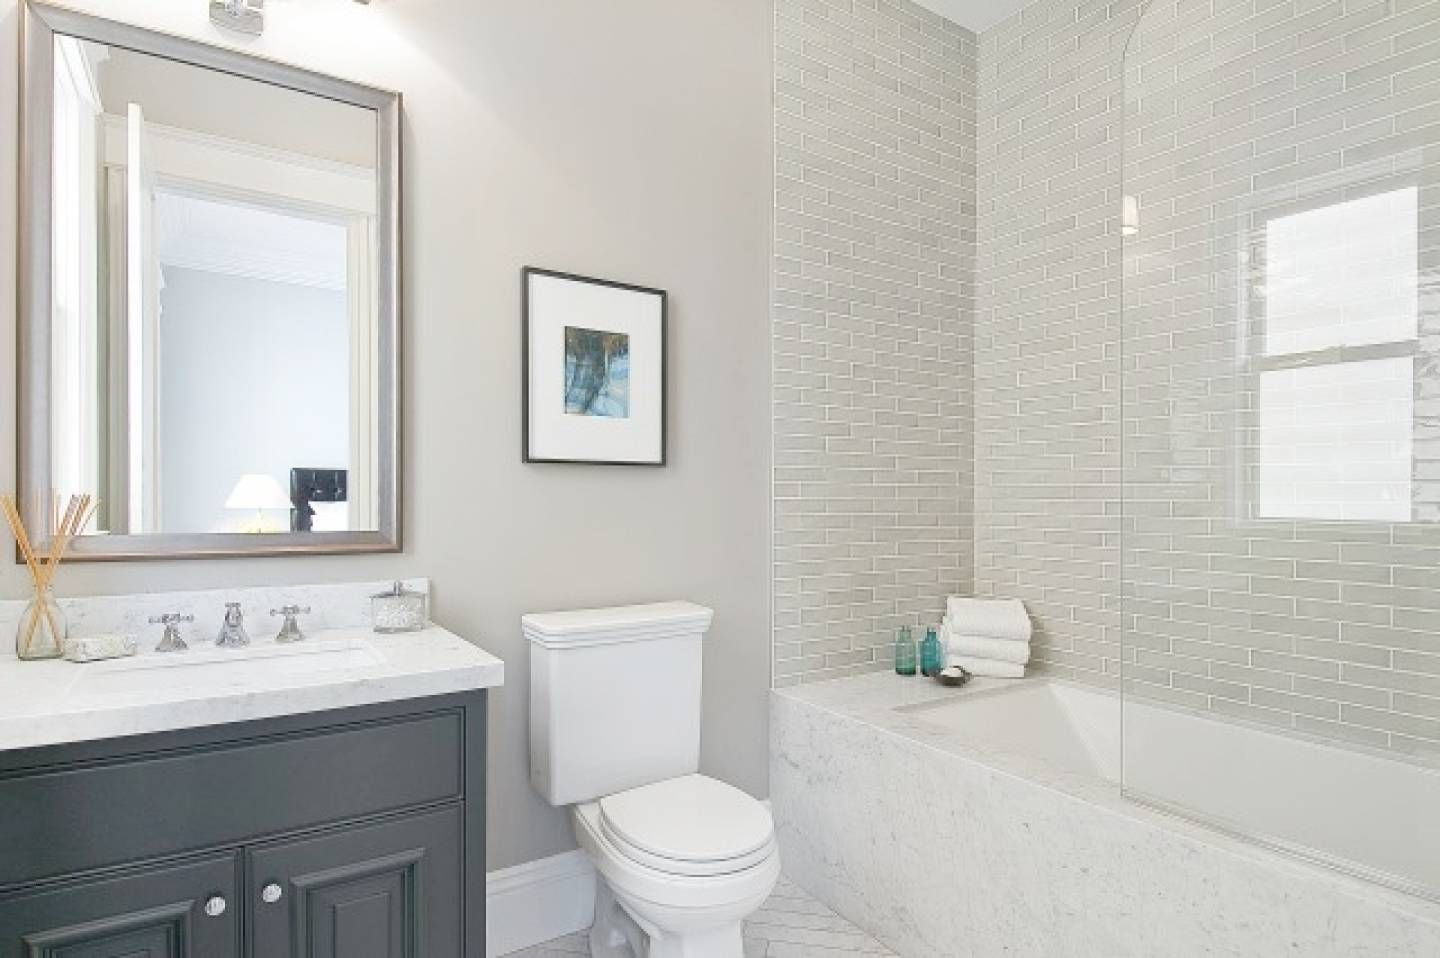 Pin by emily hayes on my bedroom pinterest gray subway tiles subway tile bathrooms bathroom gray small bathrooms gray subway tiles bathroom ideas shower window framed mirrors contemporary toilets dailygadgetfo Gallery